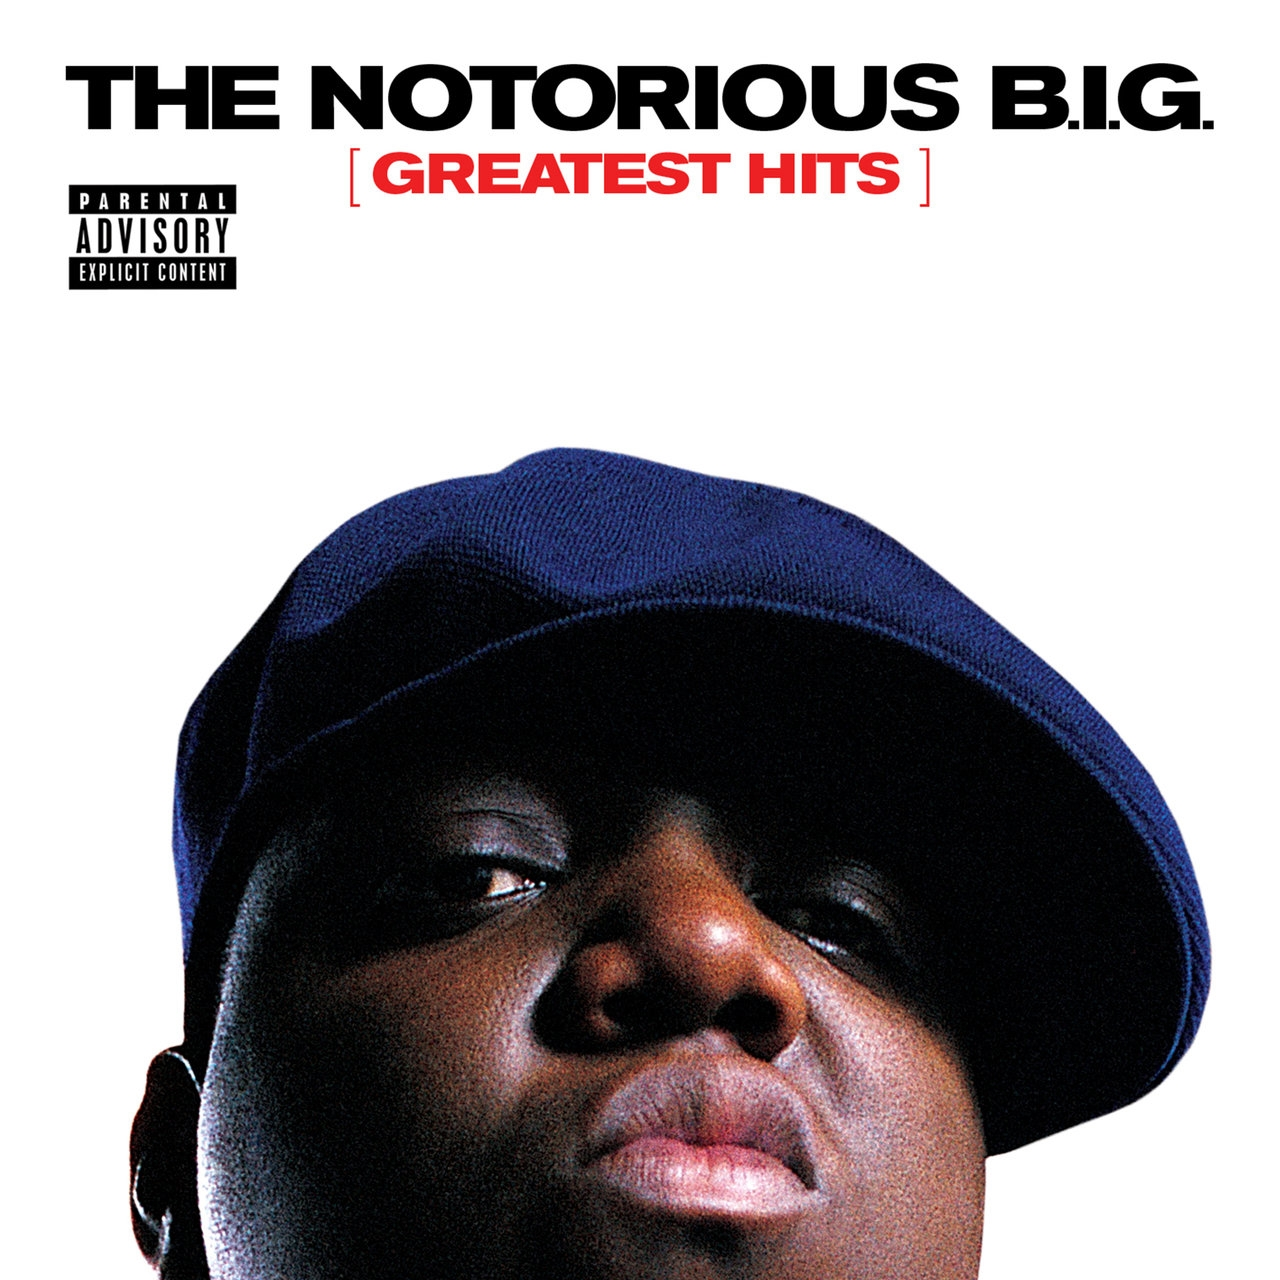 notorious big greatest hits download rar